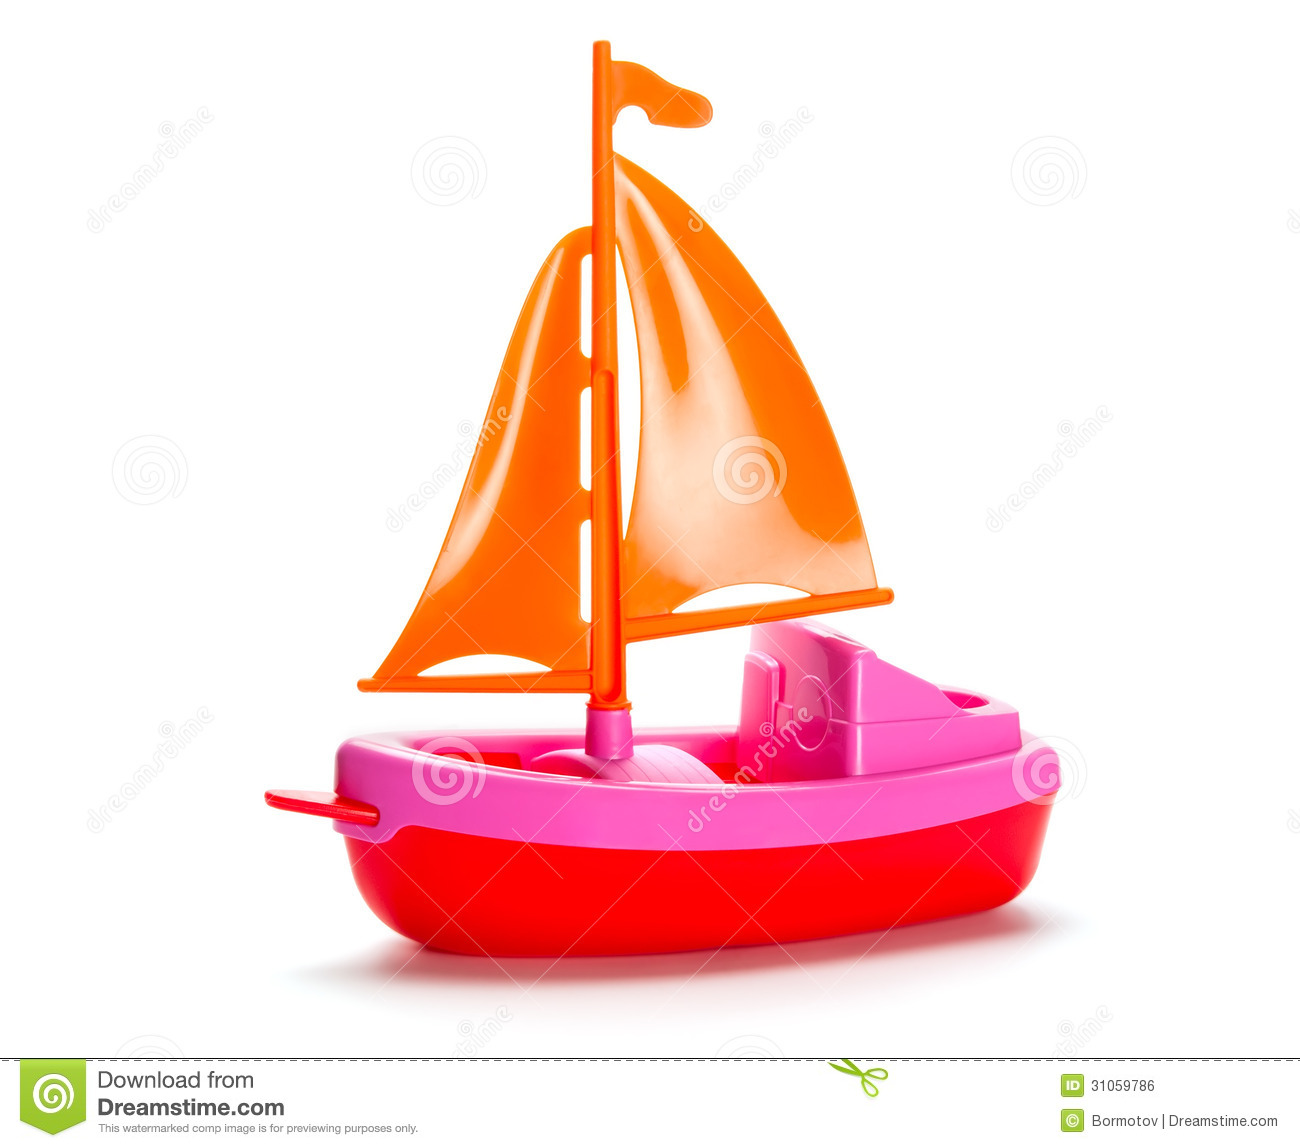 Little Plastic Toy Ship Royalty Free Stock Image - Image: 31059786